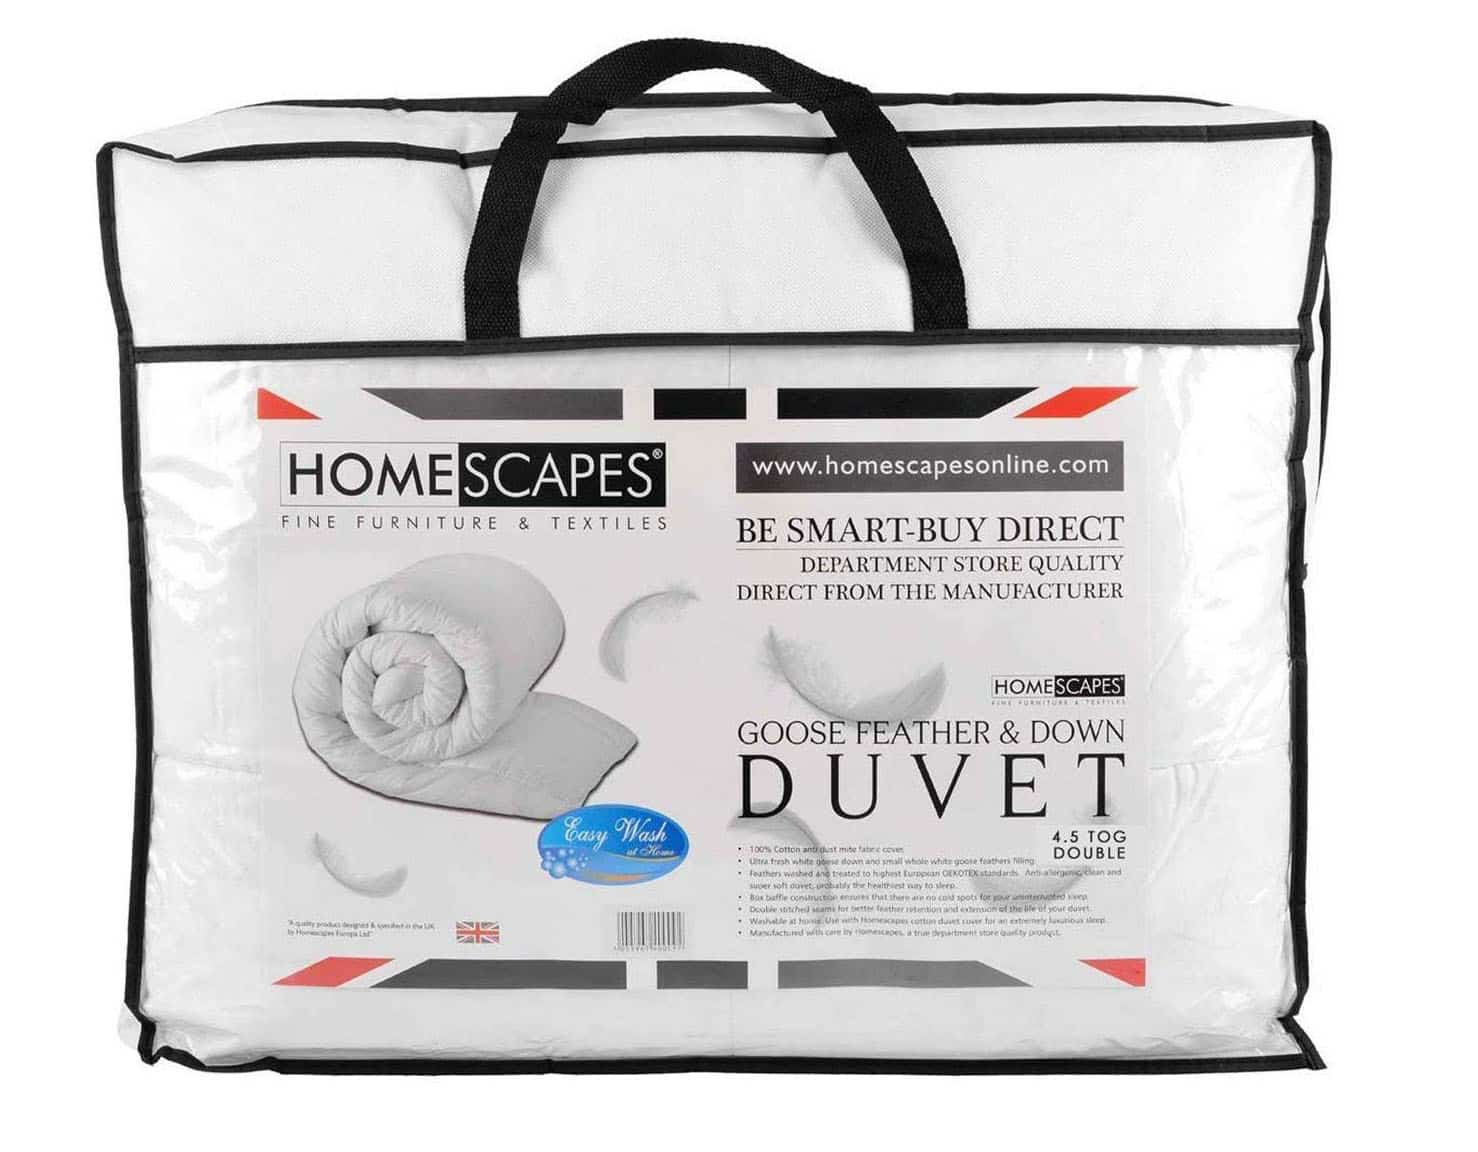 Homescapes - Luxury White Goose Feather & Down Duvet - 4.5 Tog